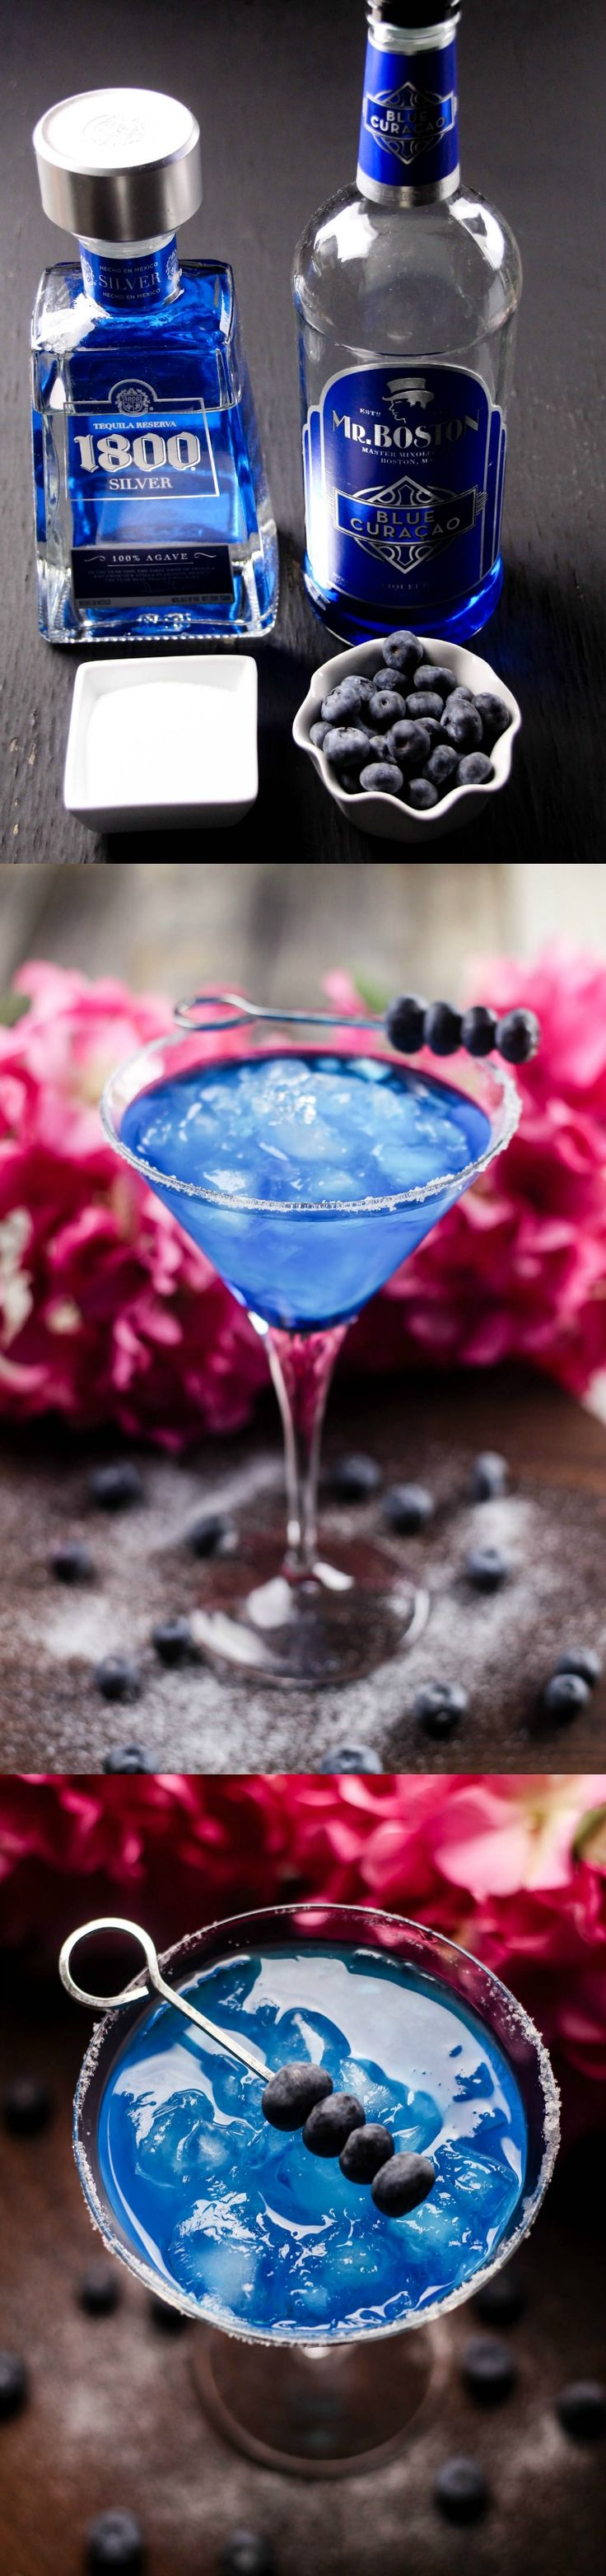 Make this delicious blueberry margarita cocktail in minutes! You'll taste the margarita flavor with a pretty blue color. Use fresh blueberries to adorn the glass and salted sugar on the rim!